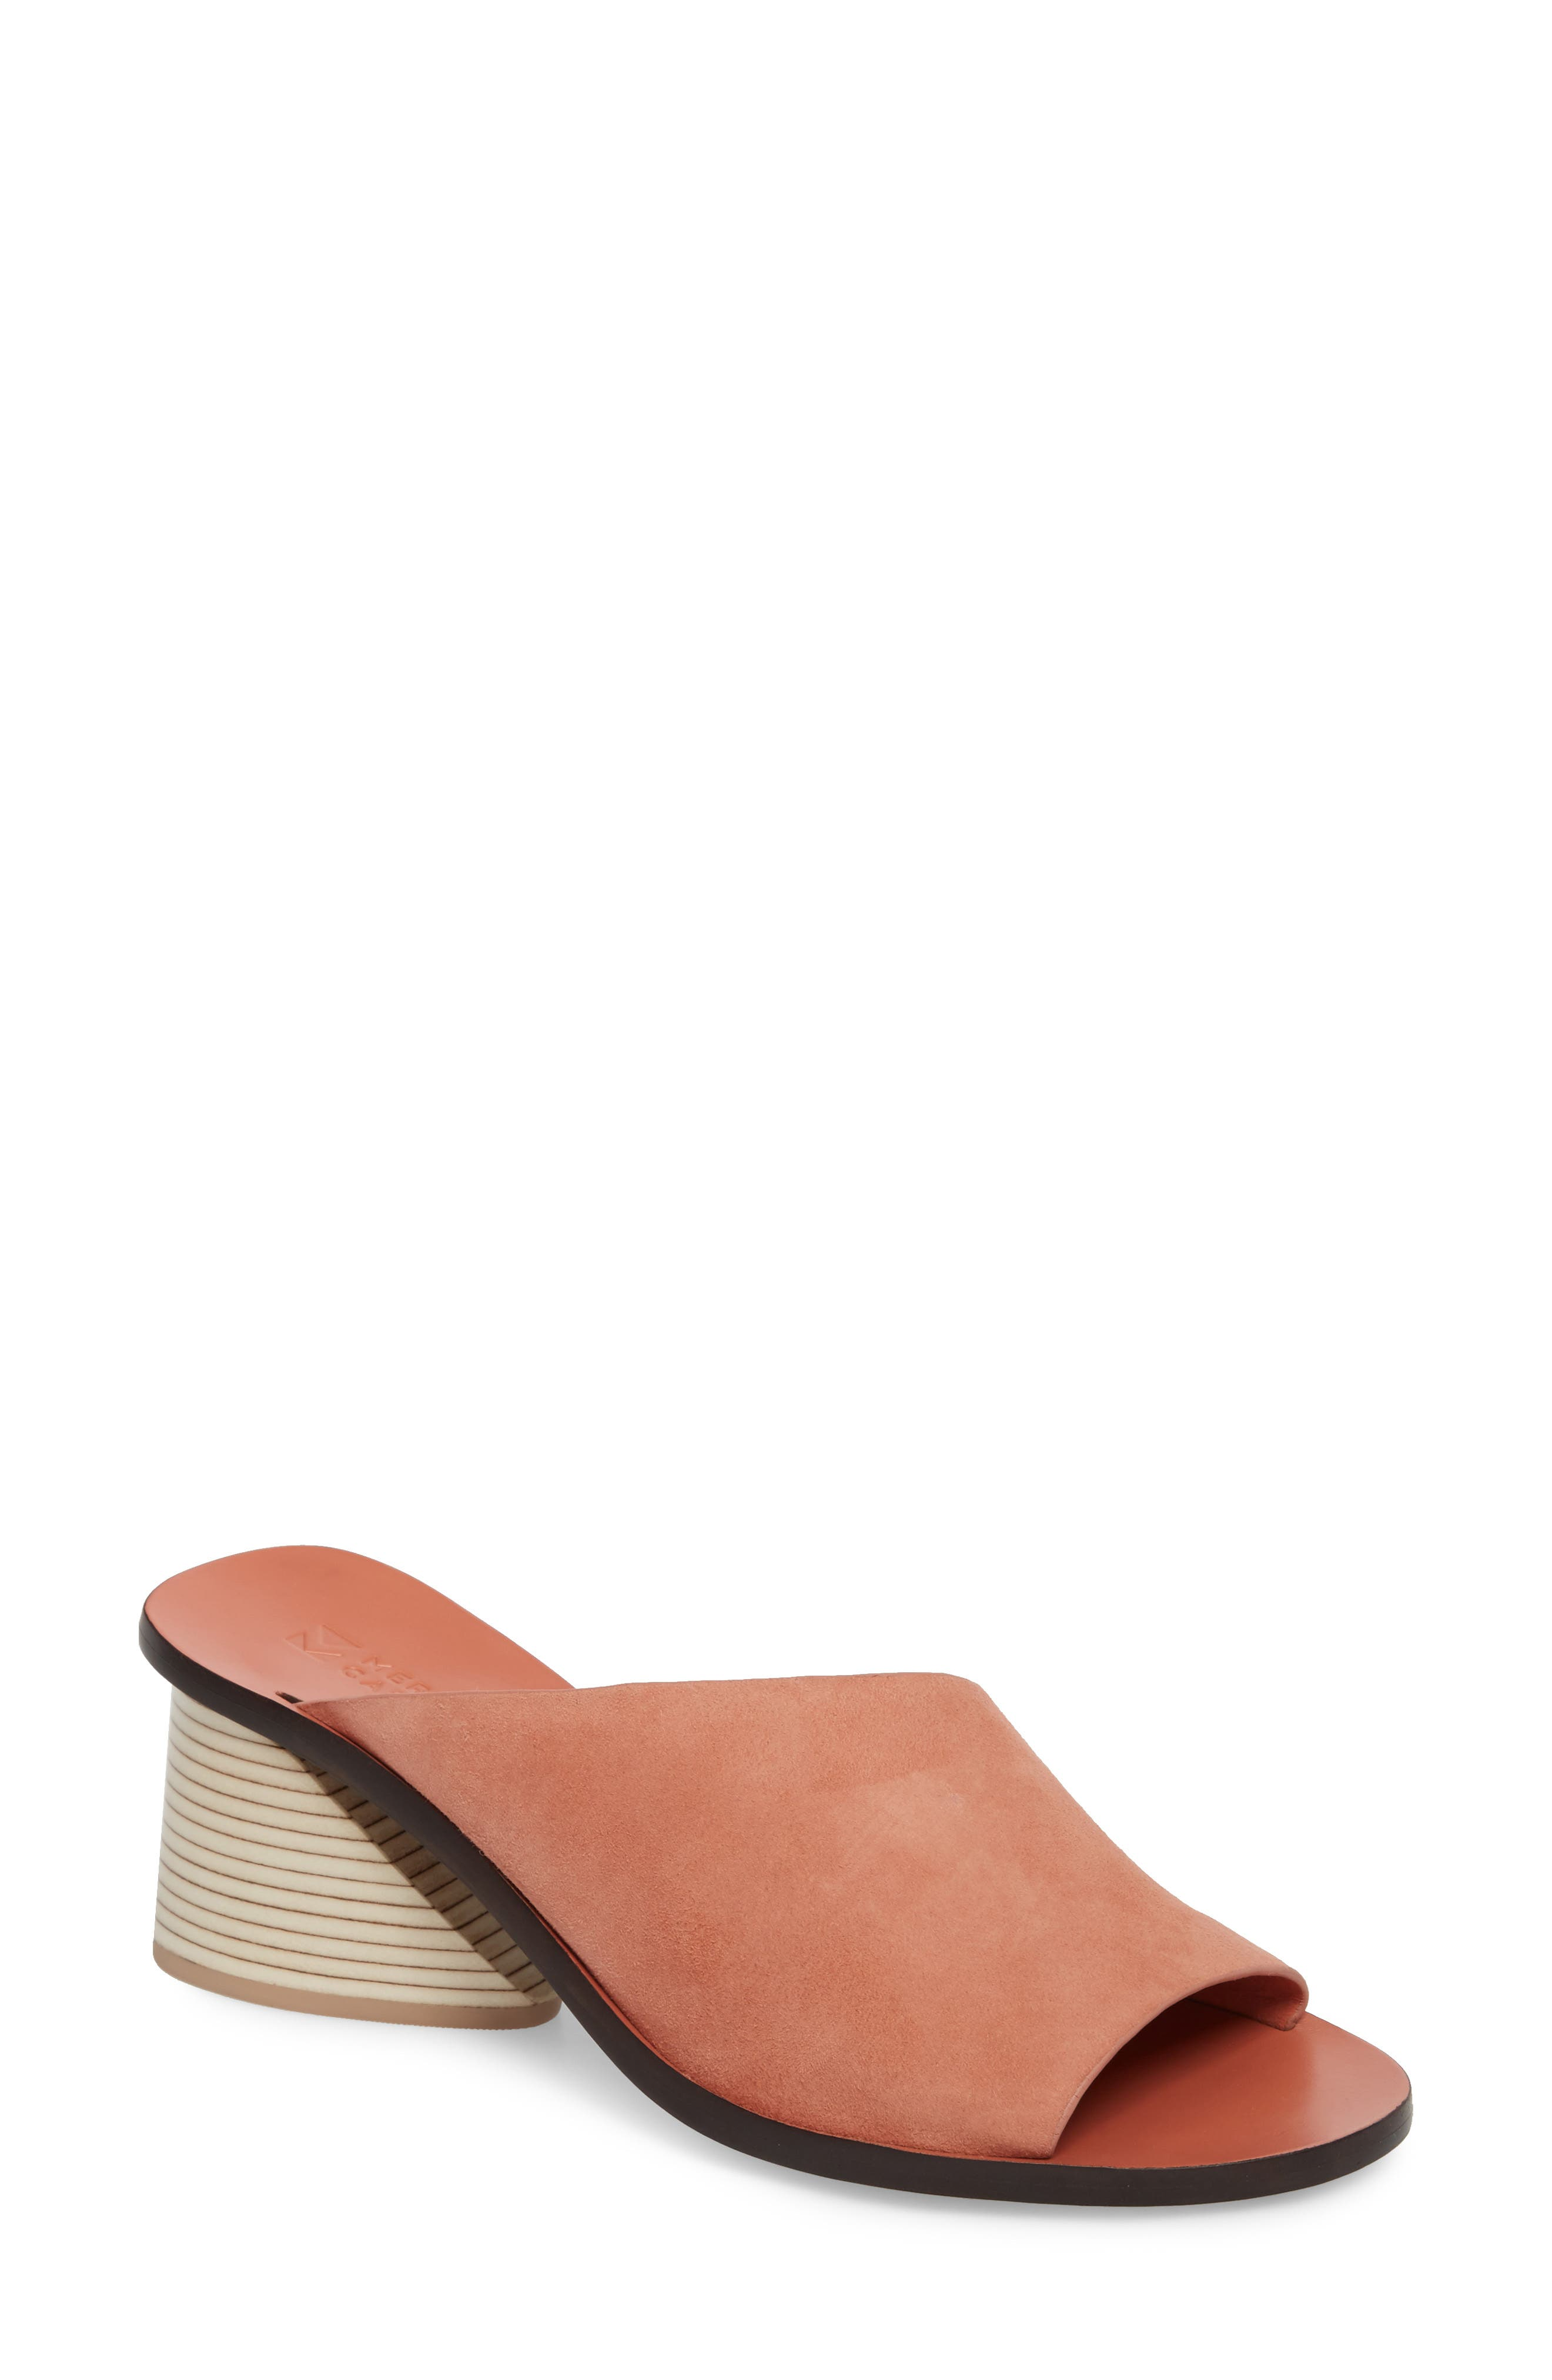 Izar Slide Sandal,                         Main,                         color, Rose Suede